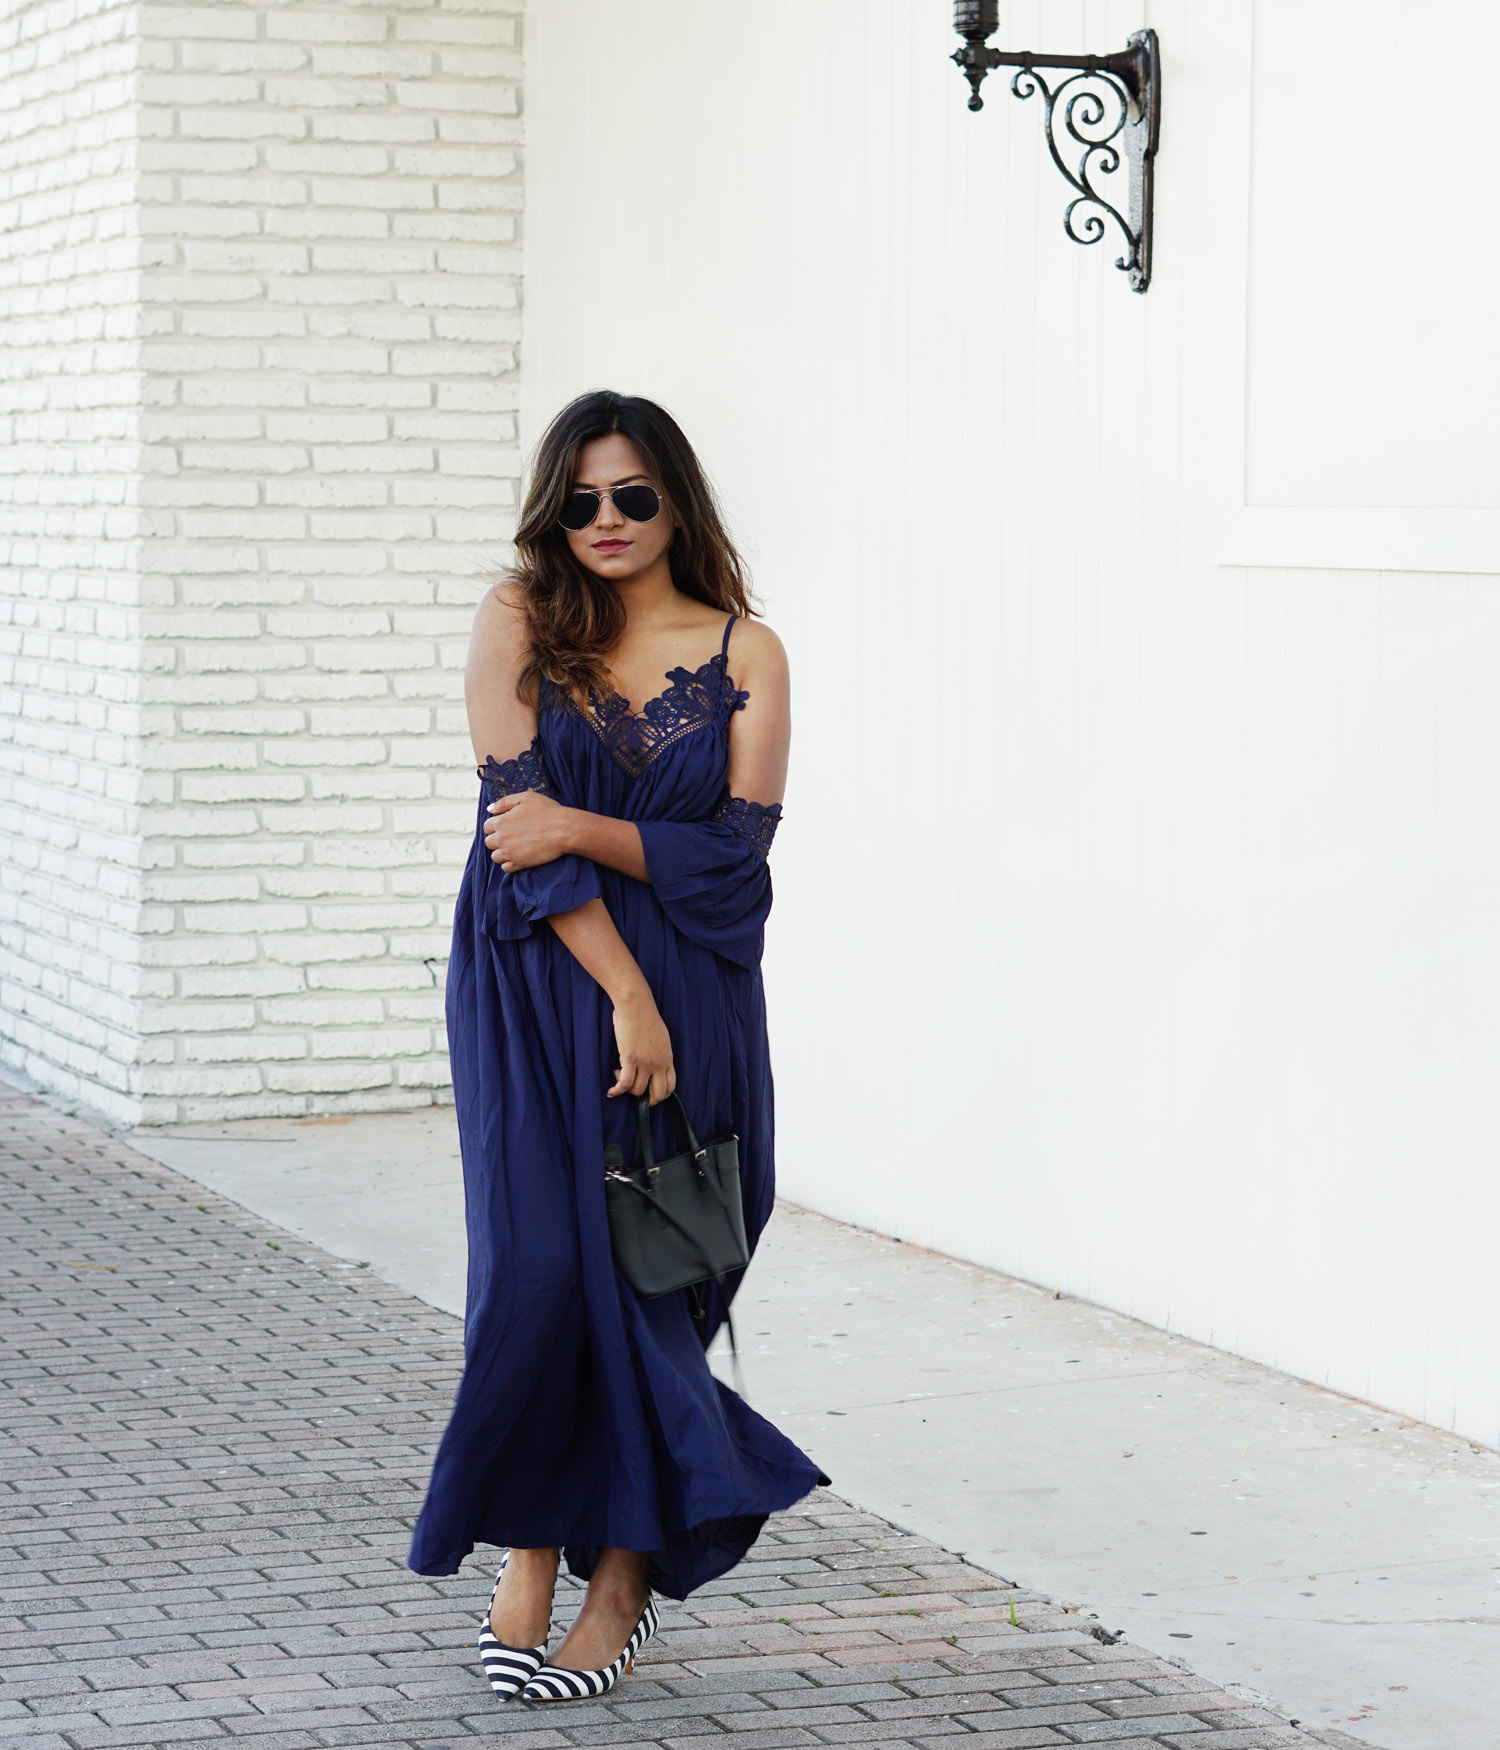 miami-boho-fashion-blogger-afroza-khan